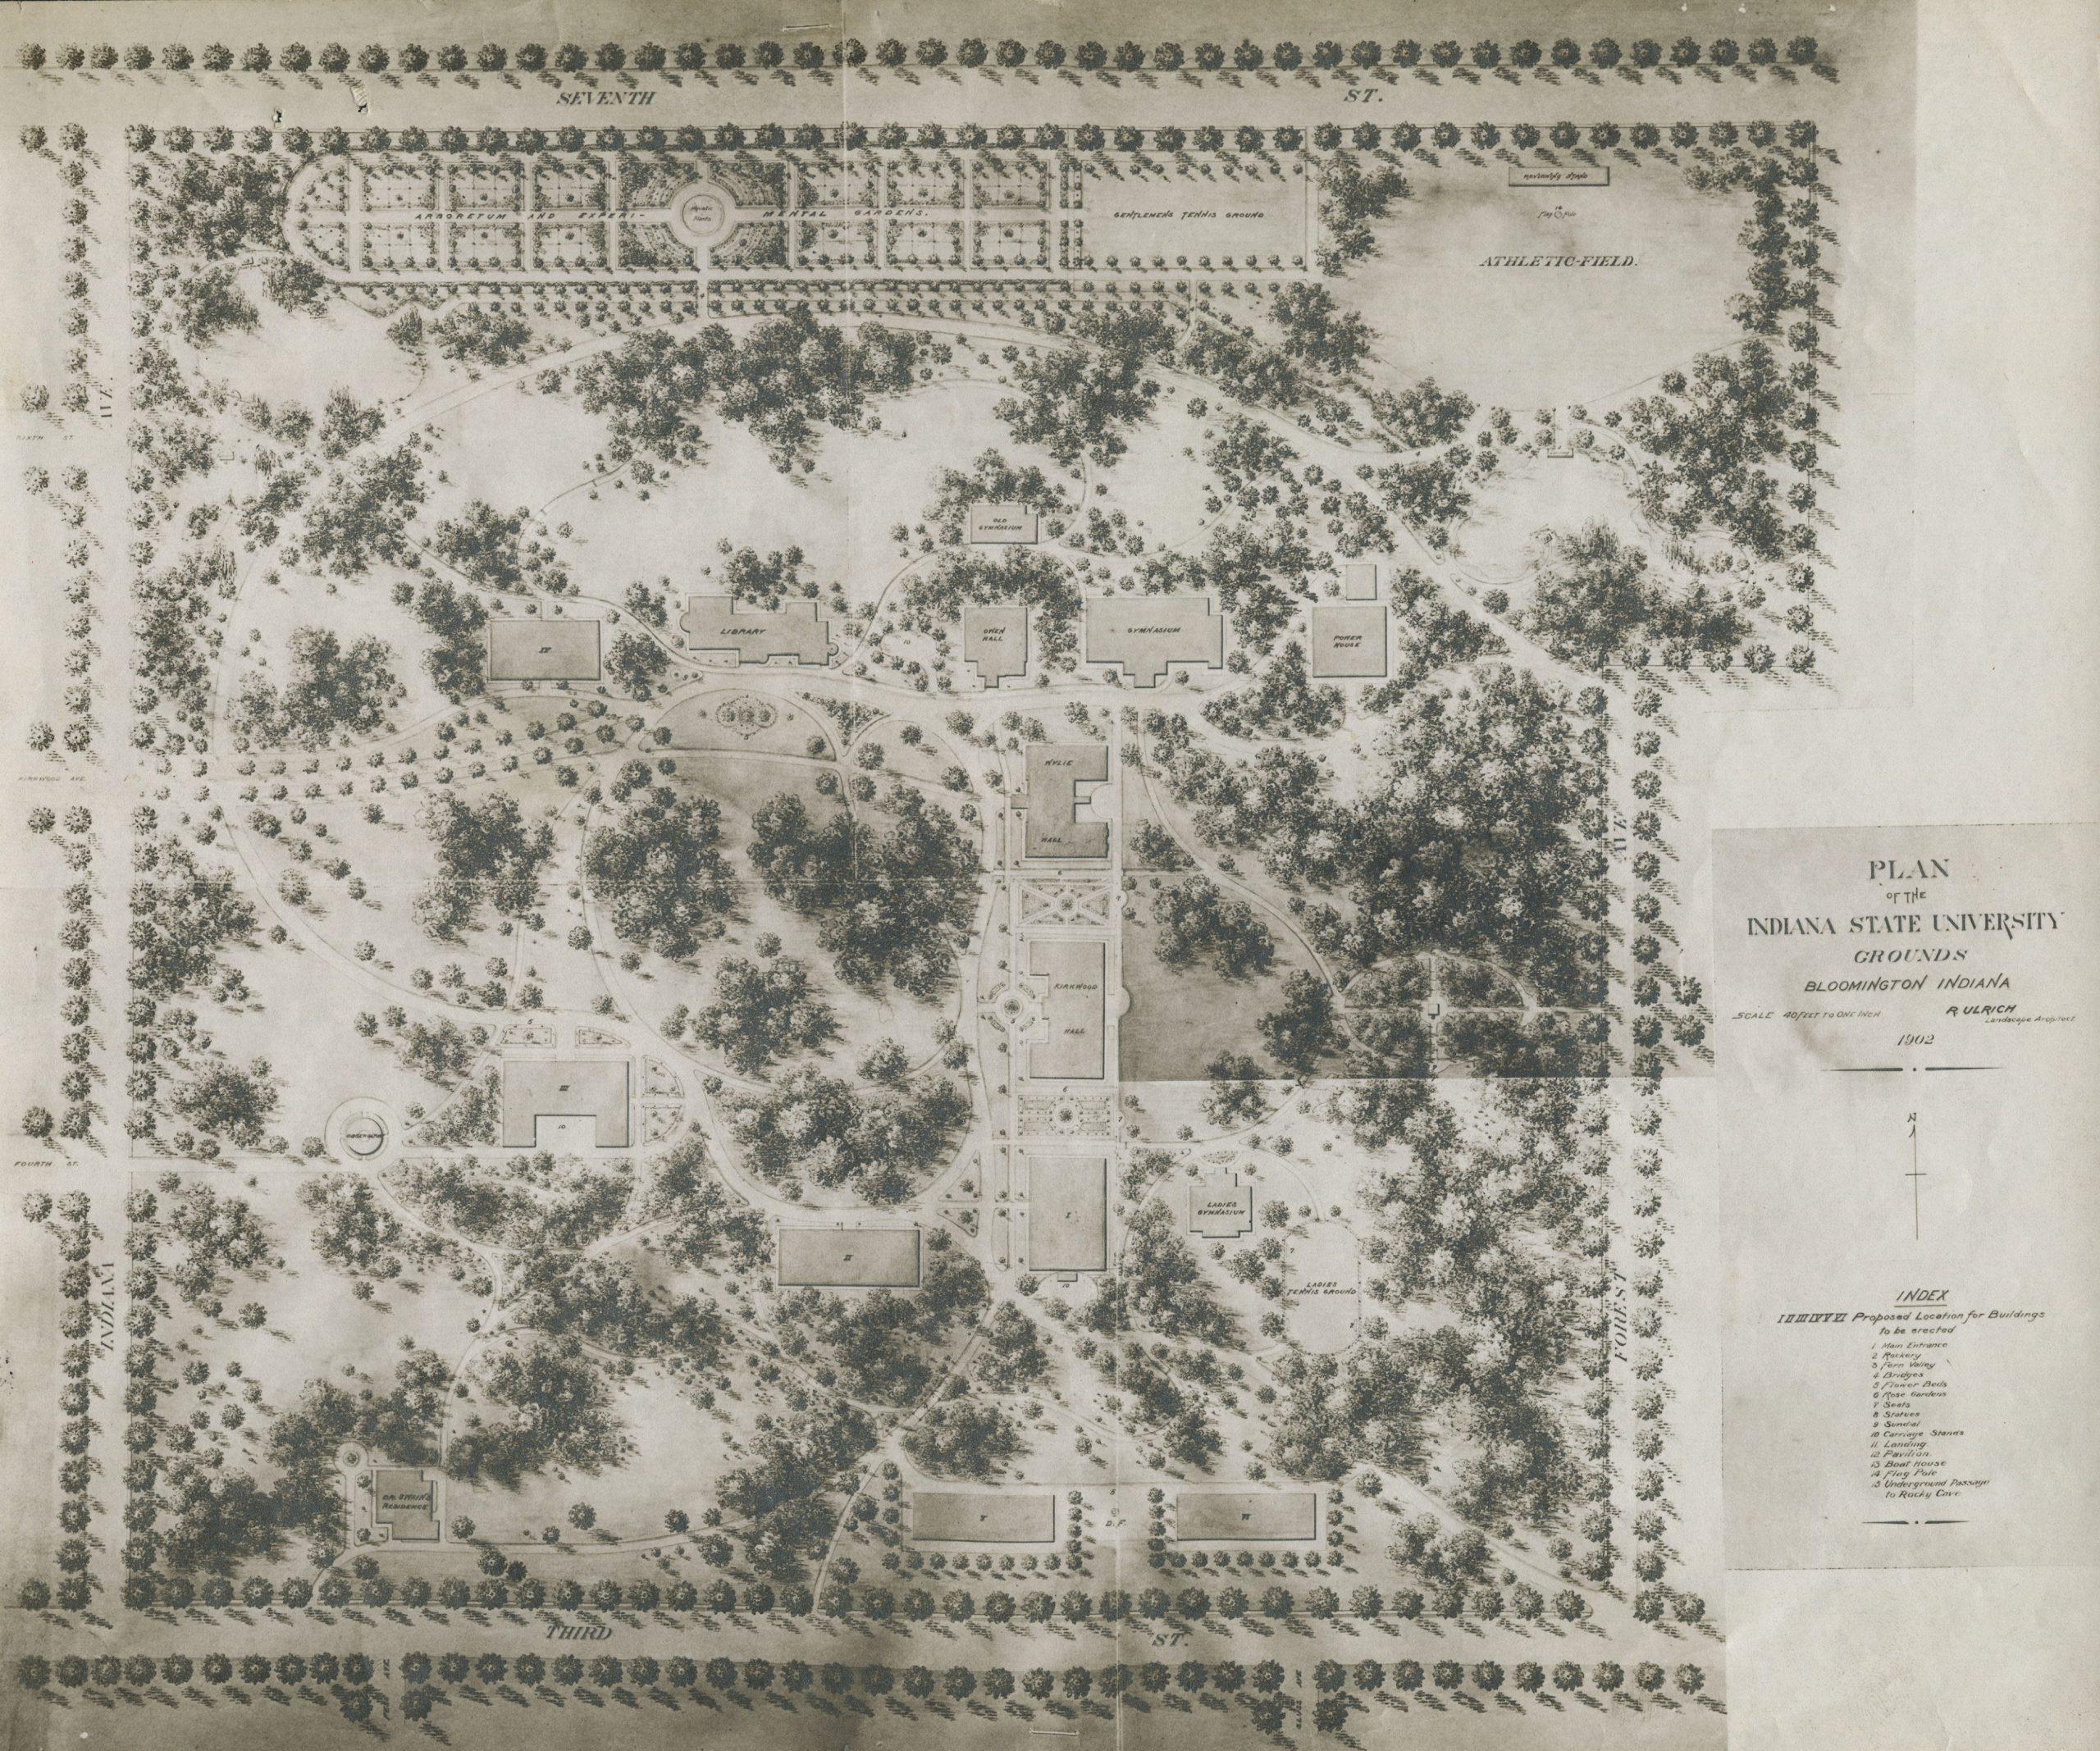 """This black-and-white, hand-drawn rendering of the IU Bloomington campus features an aerial view of the campus area between Seventh Street on the north to Third Street on the south, and Indiana Avenue on the west and Forest Avenue on the East. The map legend, labeled """"Plan of the Indiana State University Grounds,"""" is located in the bottom right corner of rendering."""